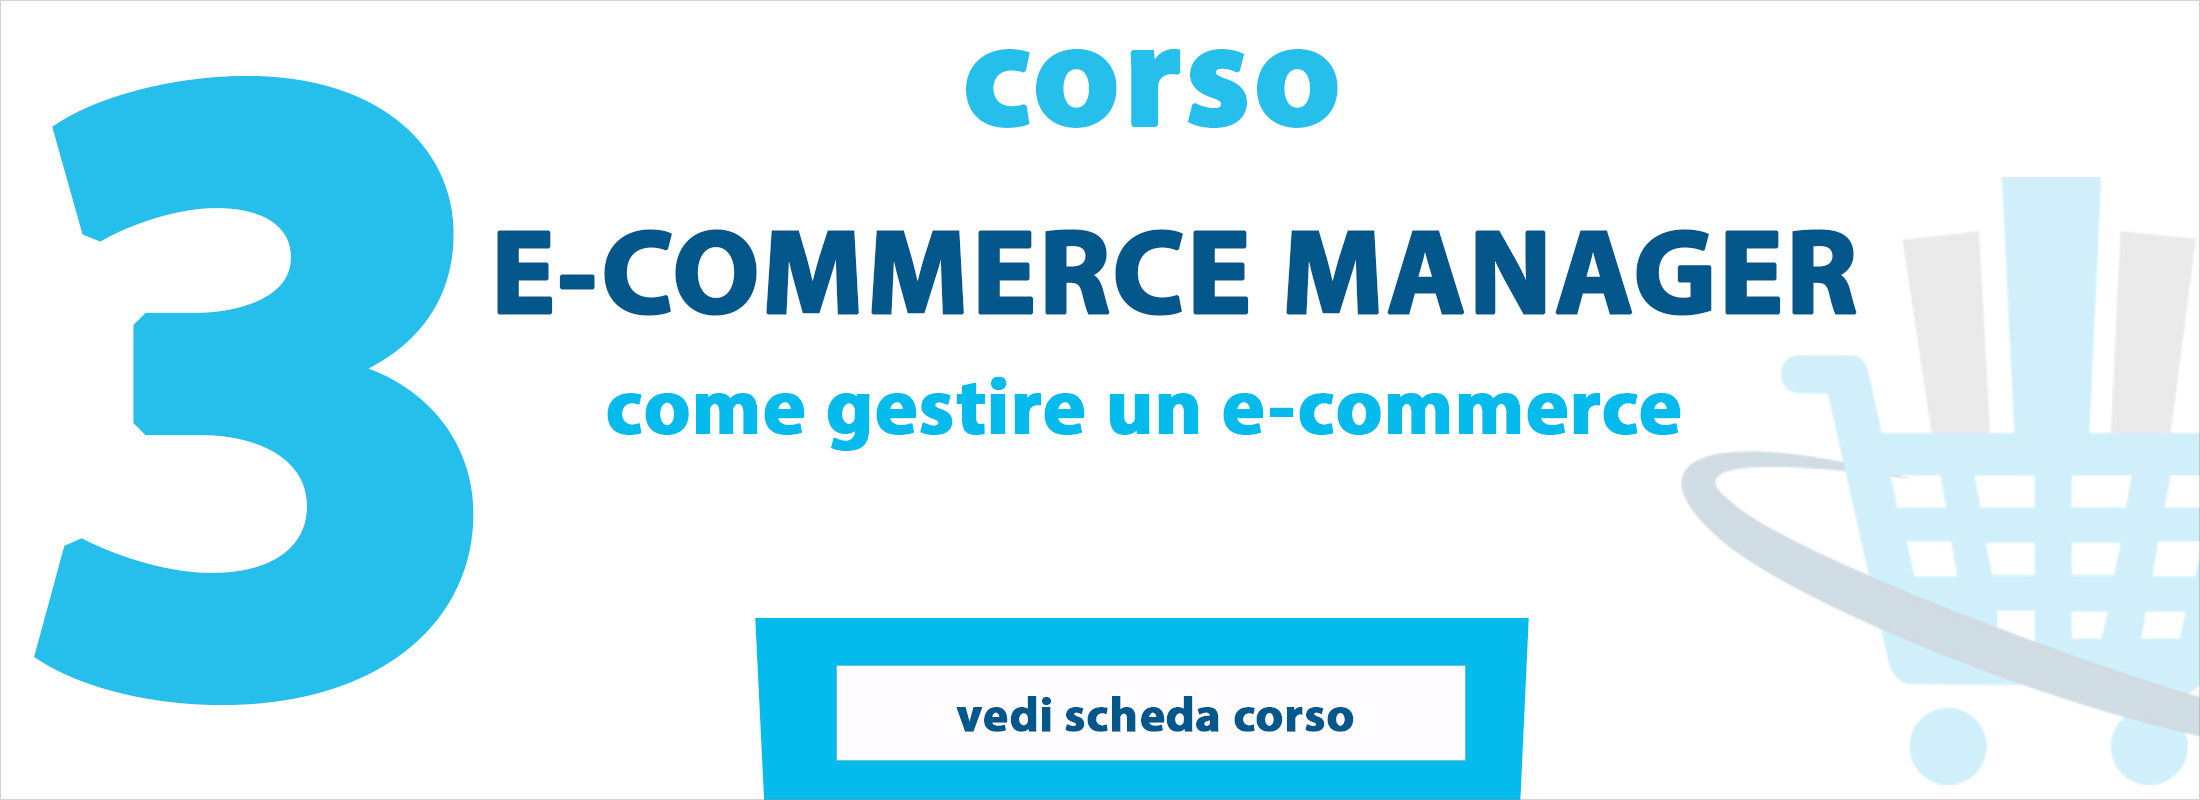 corso3diventareecommercemanager